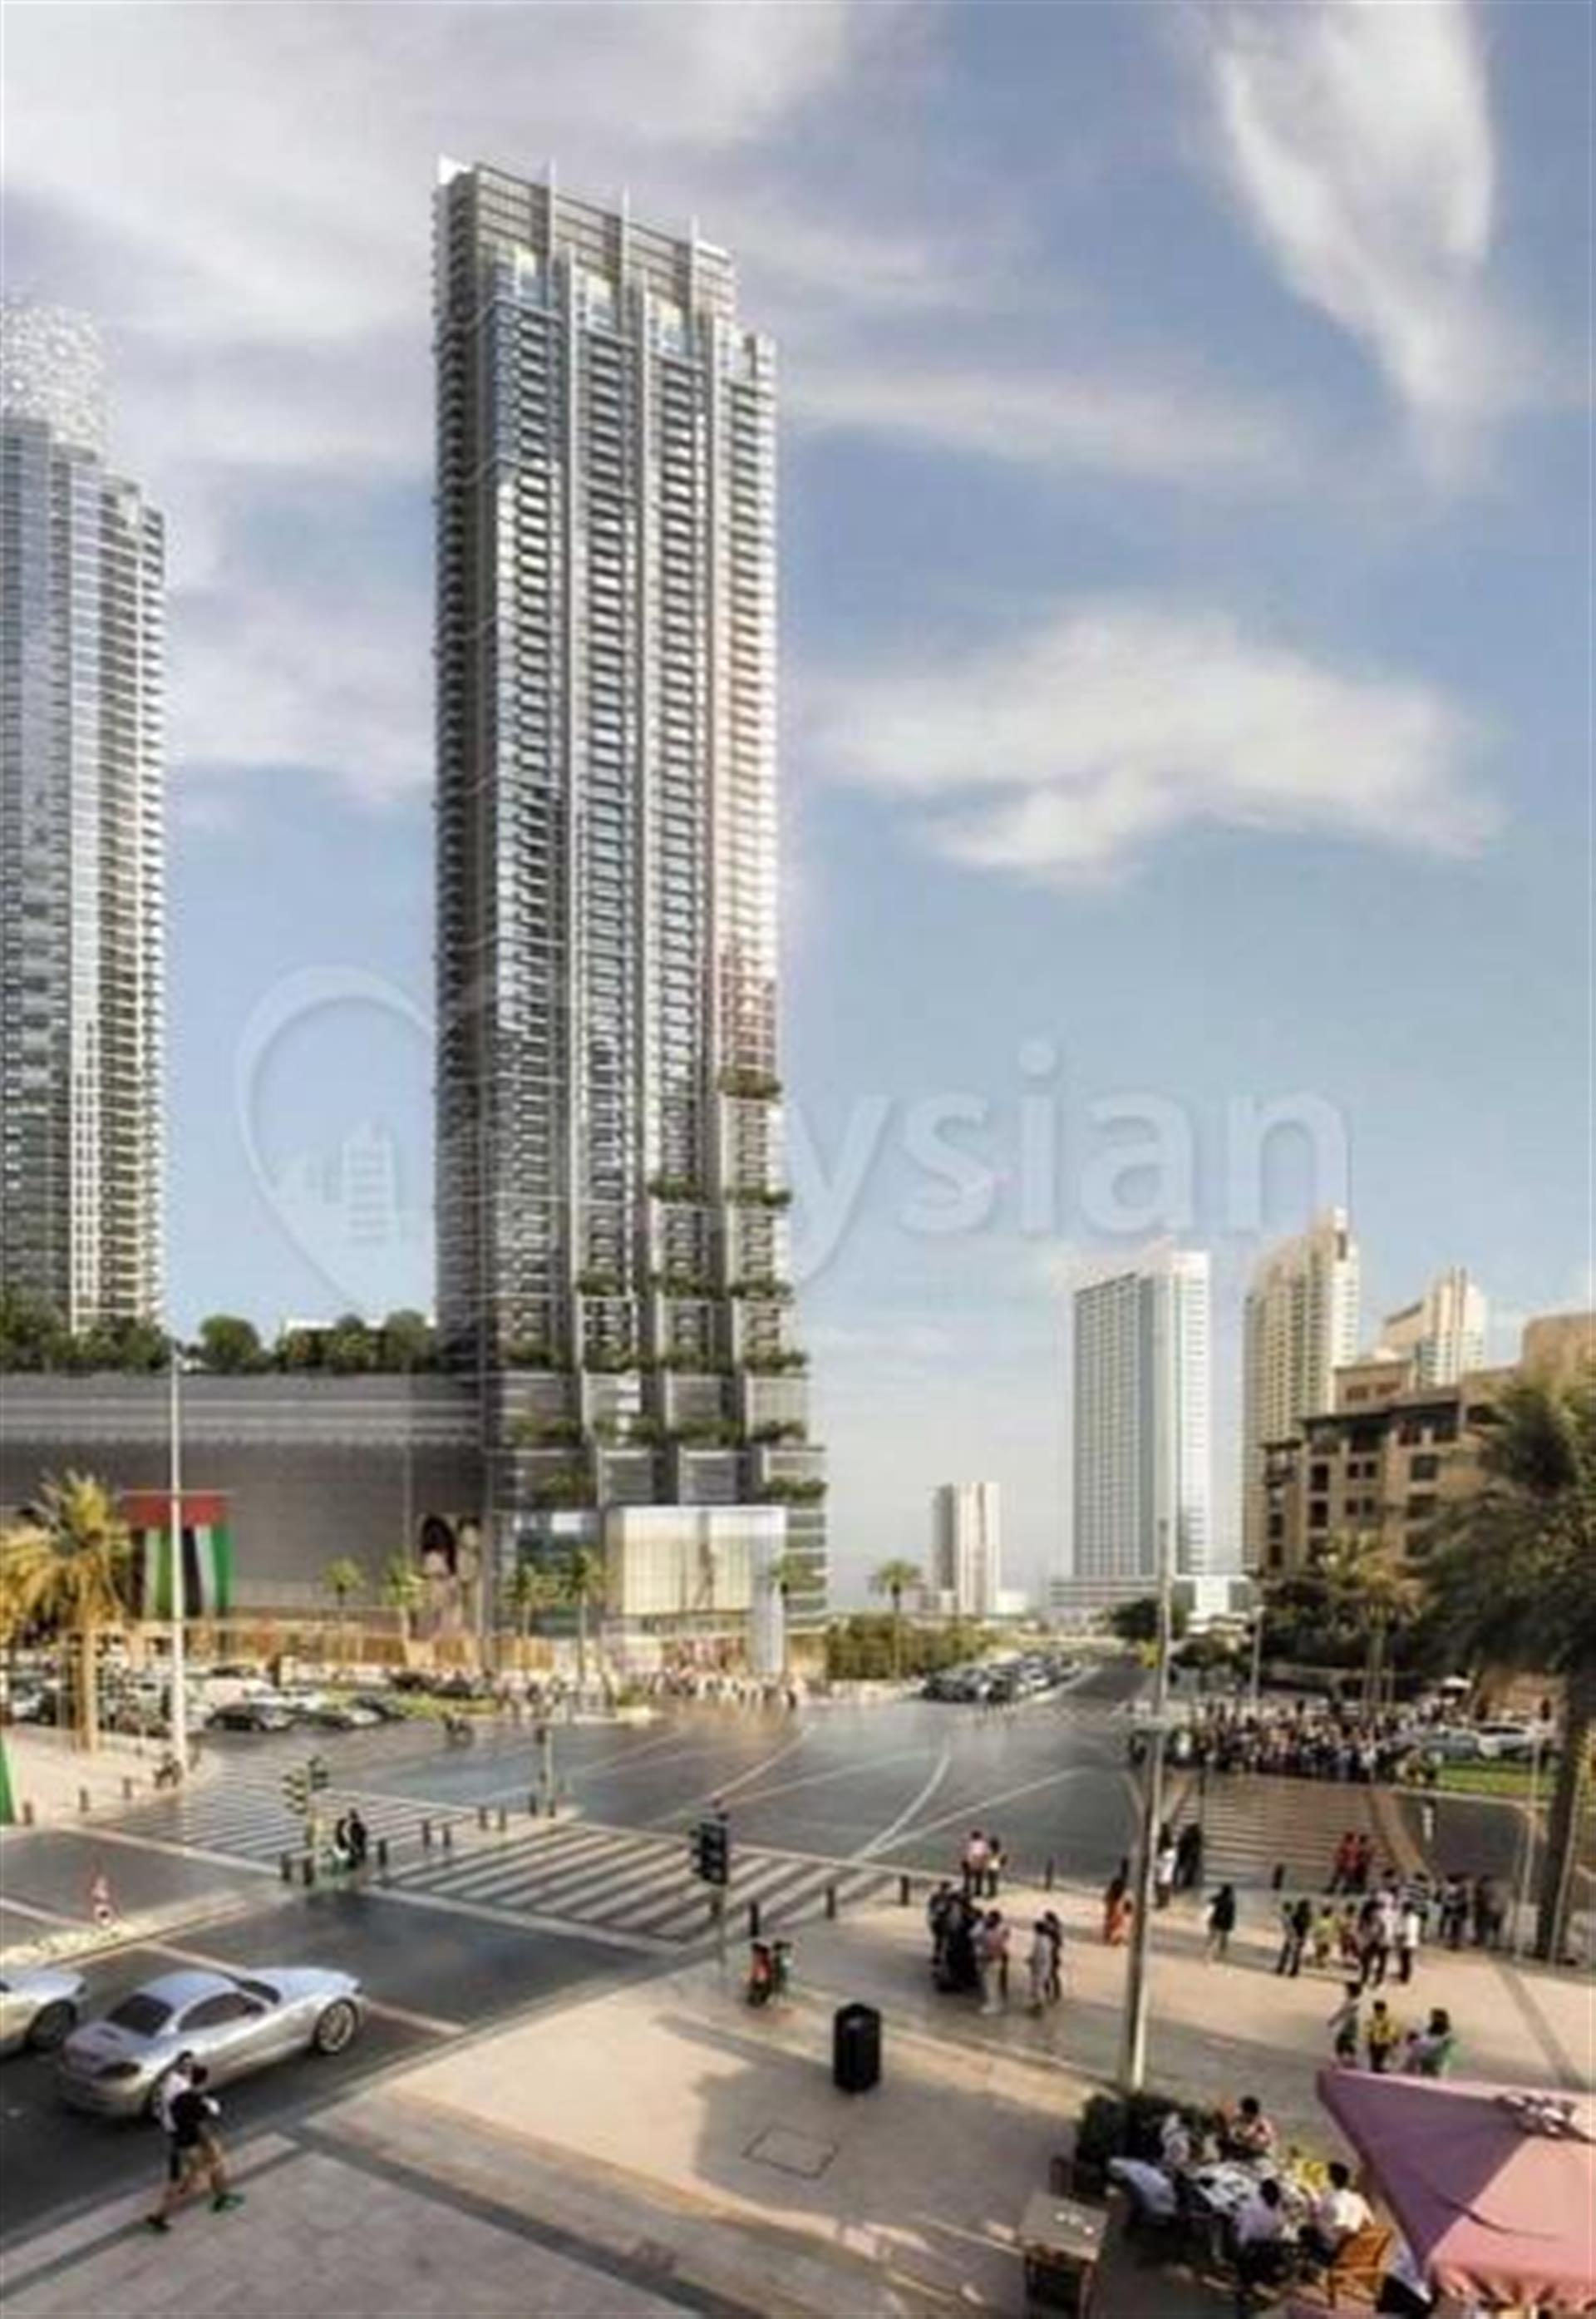 Property - Apartment for sale in Downtown- Dubai - Vida Residence